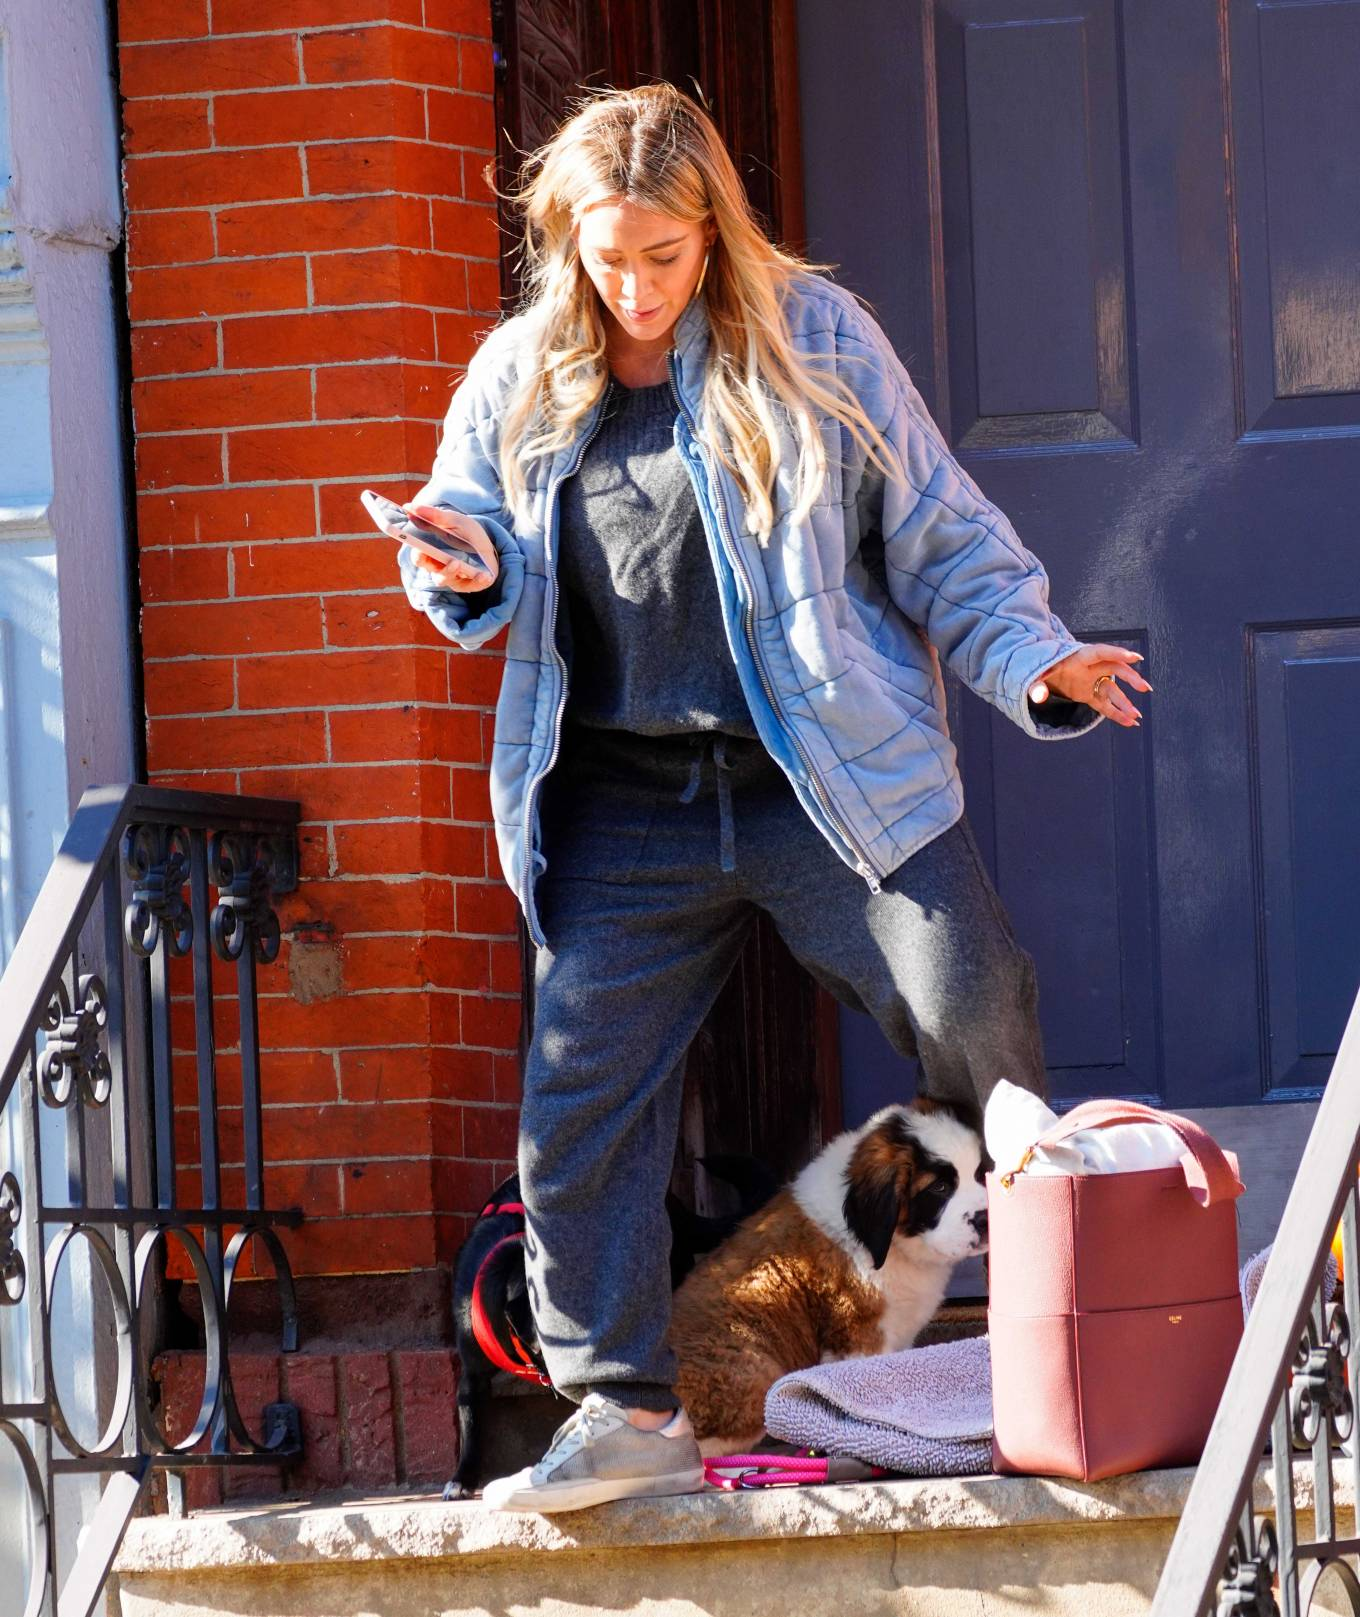 Hilary Duff 2020 : Hilary Duff – Out with her new puppy in NYC-01